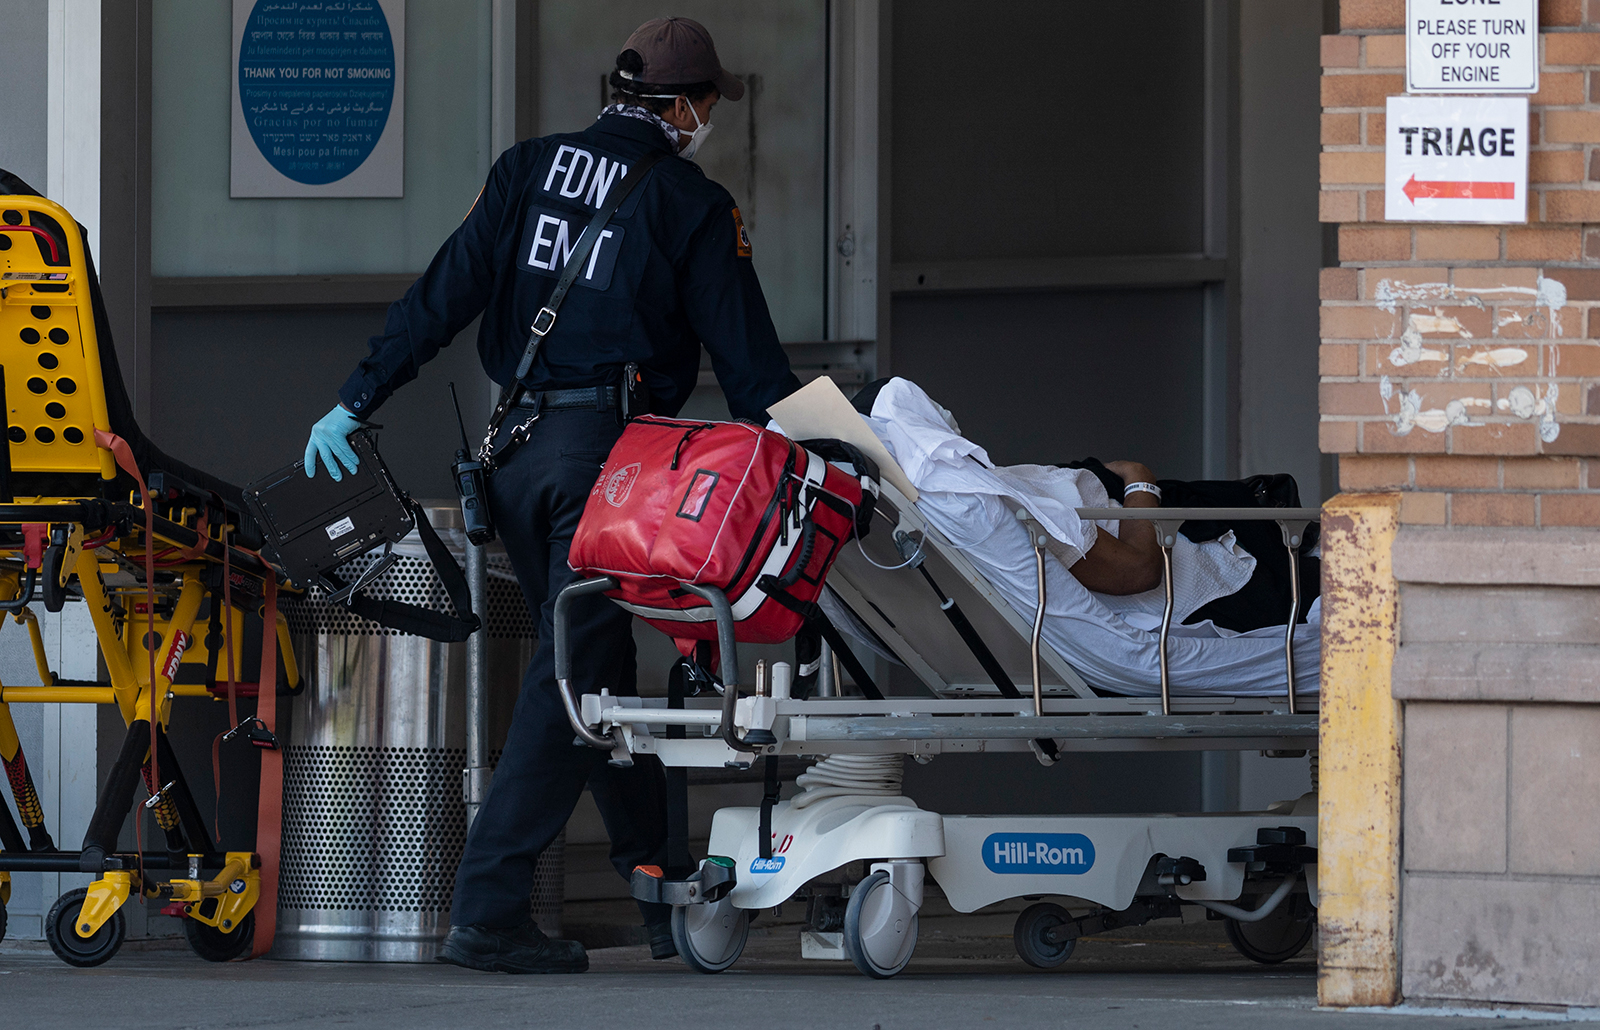 Medical workers transport a patient outside a special COVID-19 illness area at Maimonides Medical Center  in Brooklyn, New York on May 17.